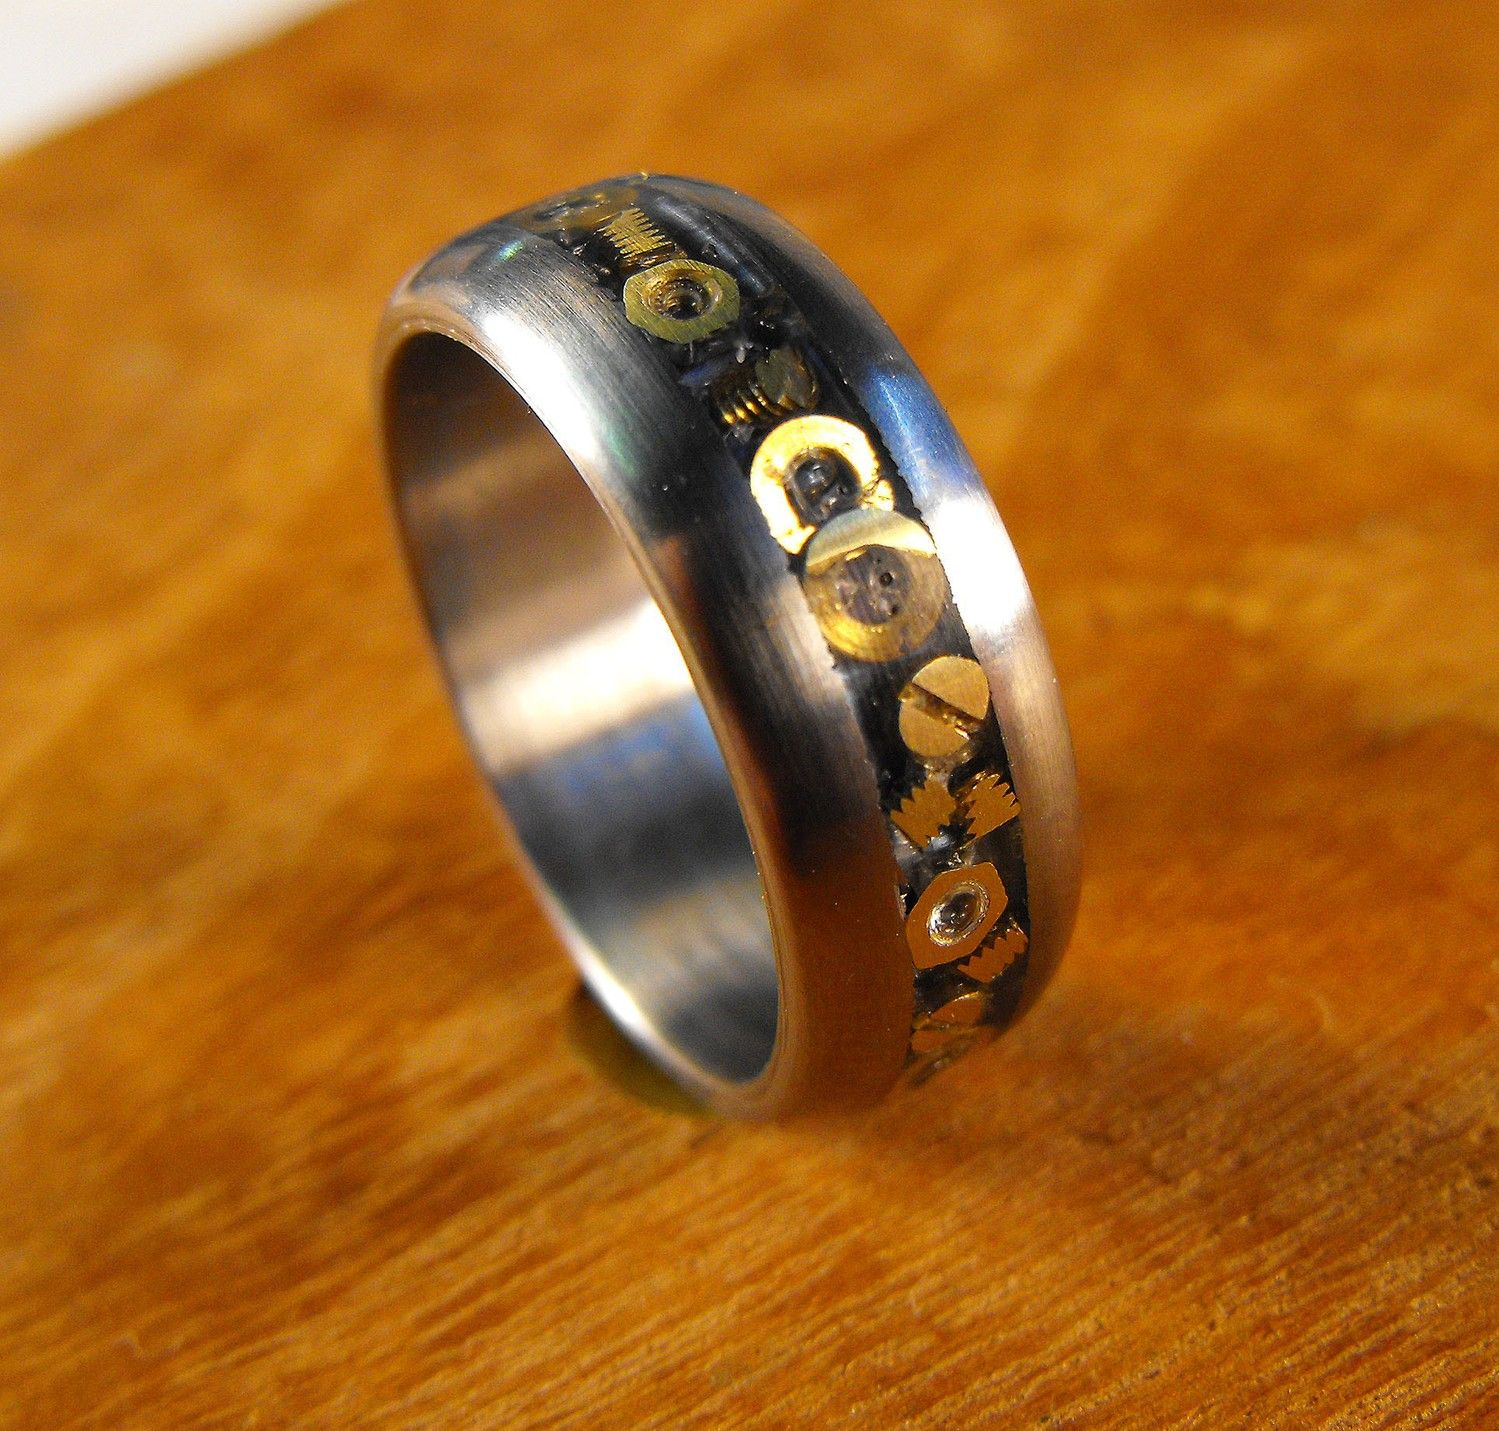 steampunk wedding rings Titanium Wedding Ring with Inlaid Hardware The Nuts and Bolts Ring